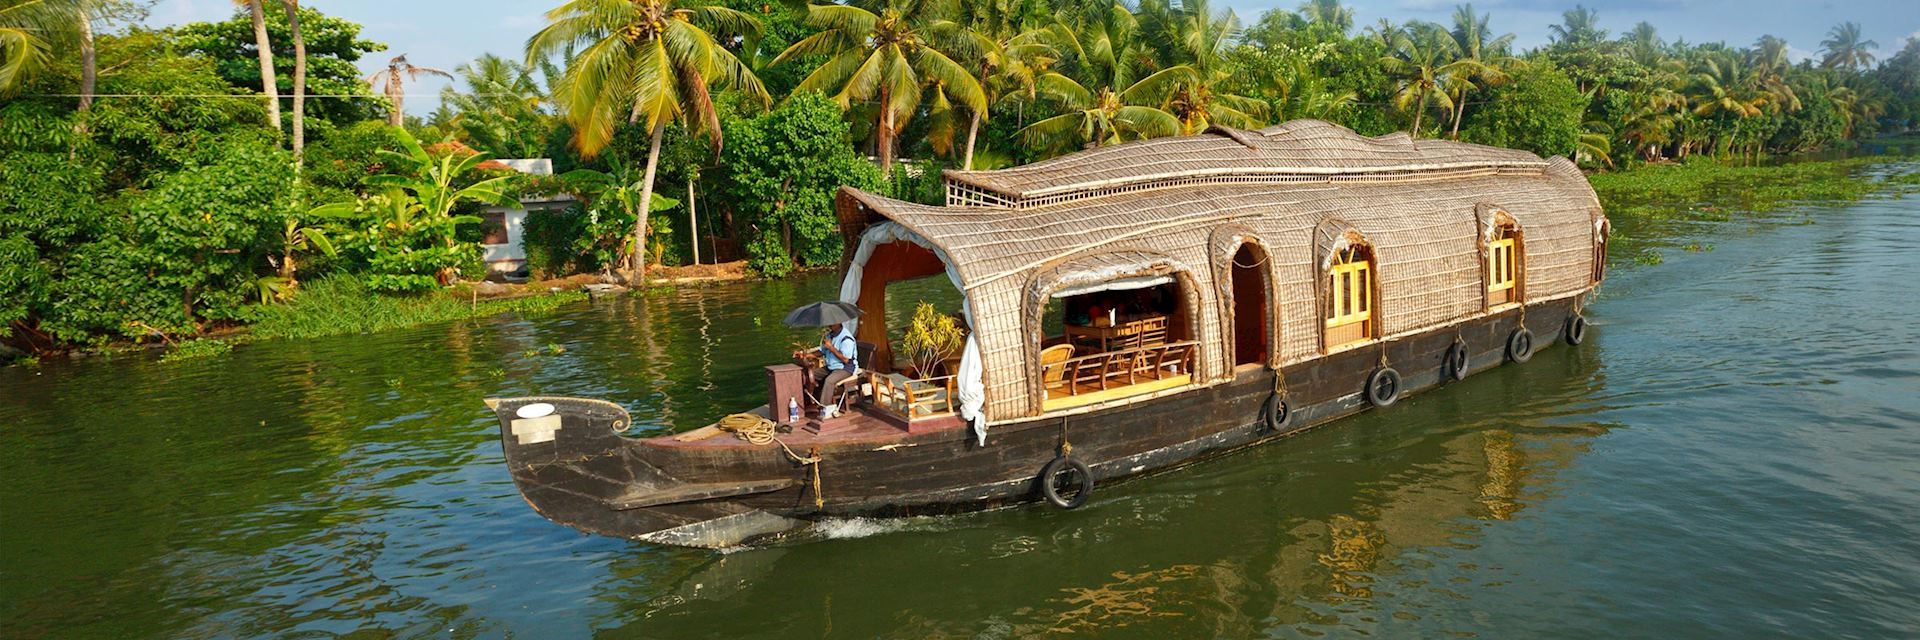 Keralan Houseboats (Rice barges)